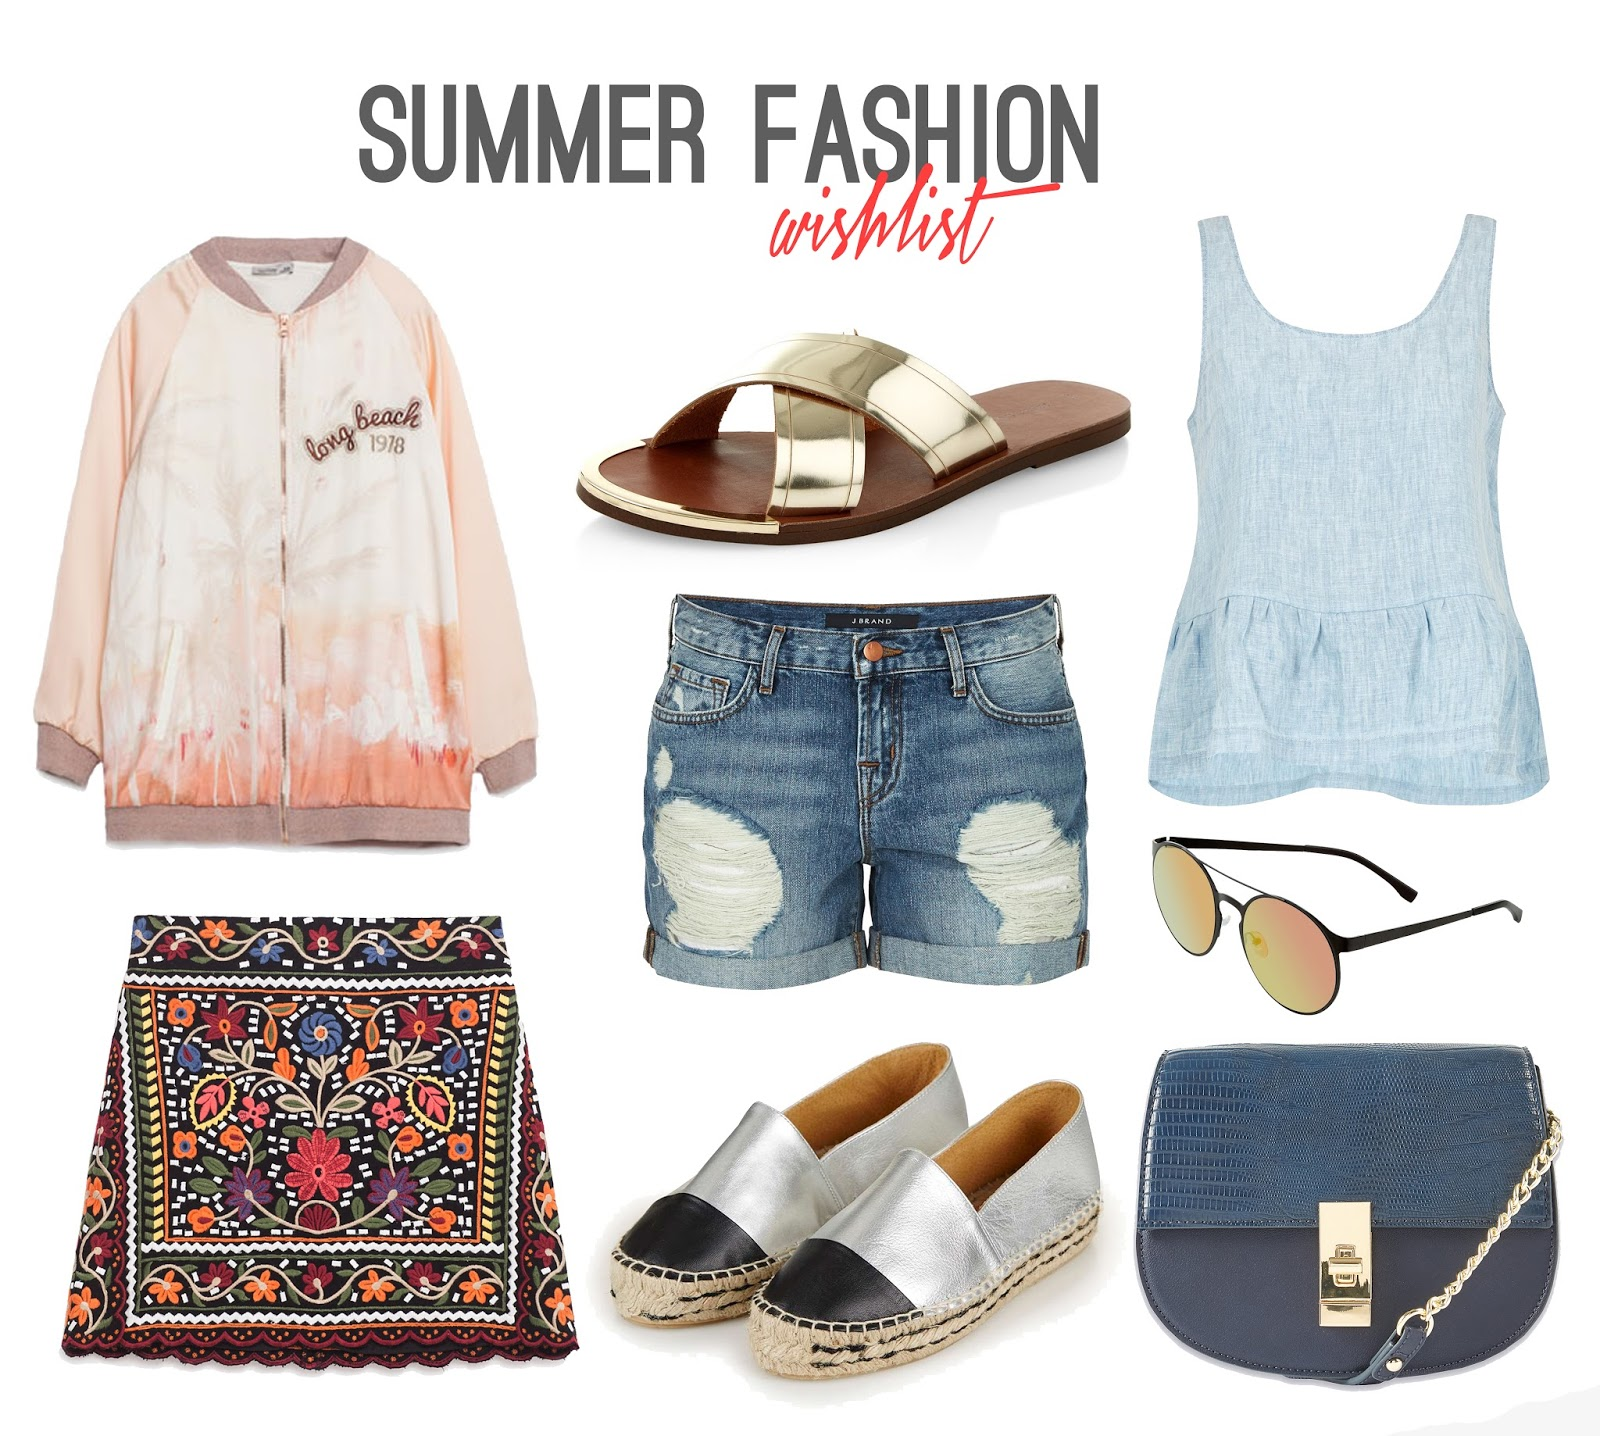 42a81c5d086 Fashion  Summer Wishlist